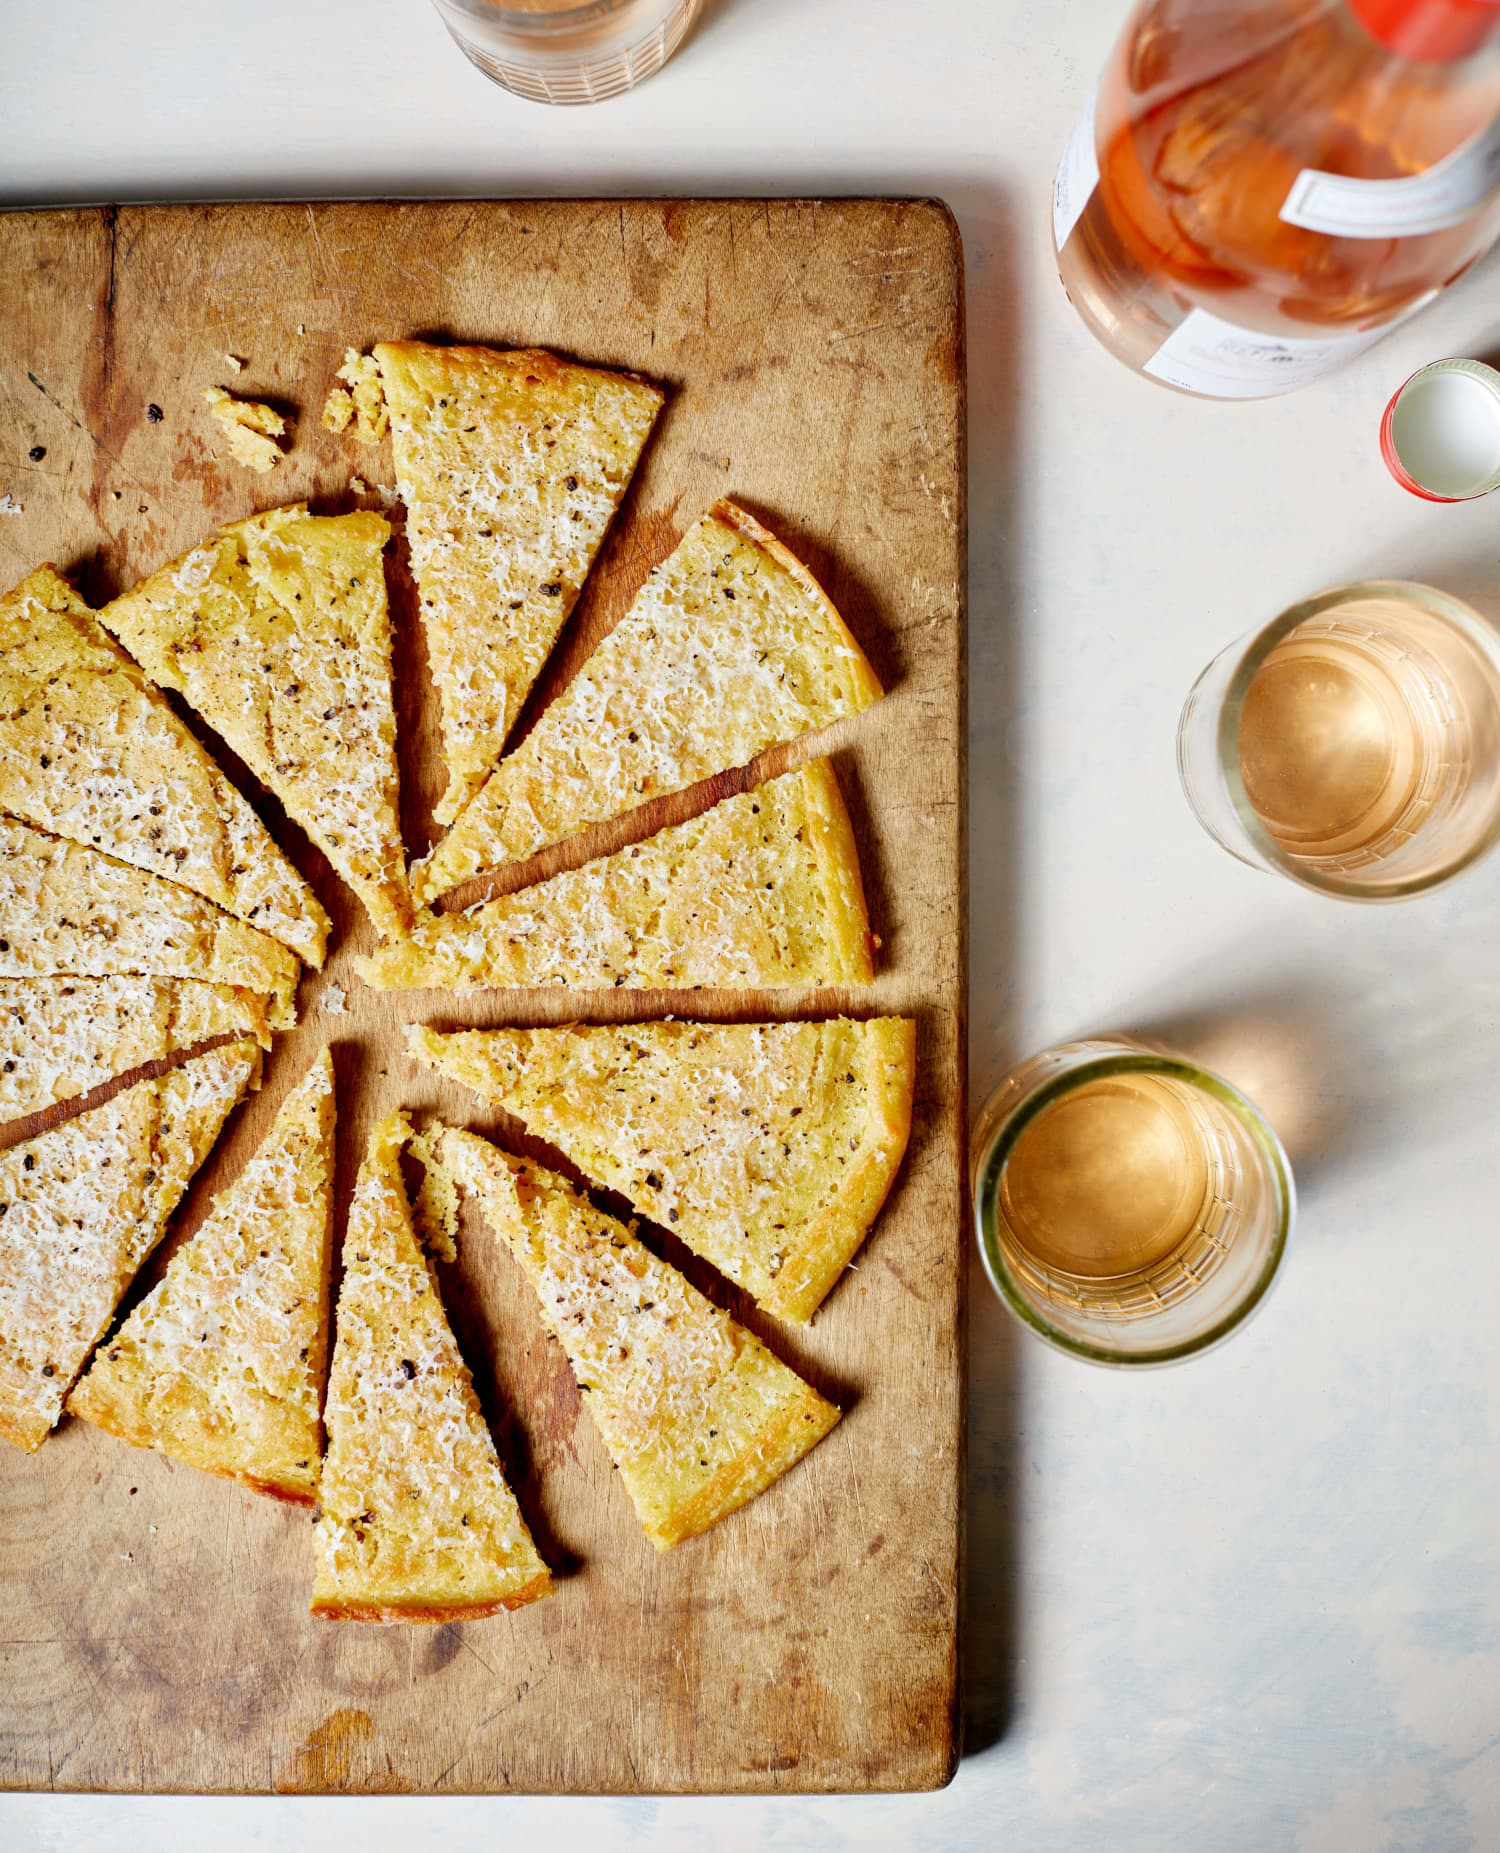 Forget Cheese and Crackers: This 3-Ingredient Cacio e Pepe Flatbread Is the Best Snack I Know